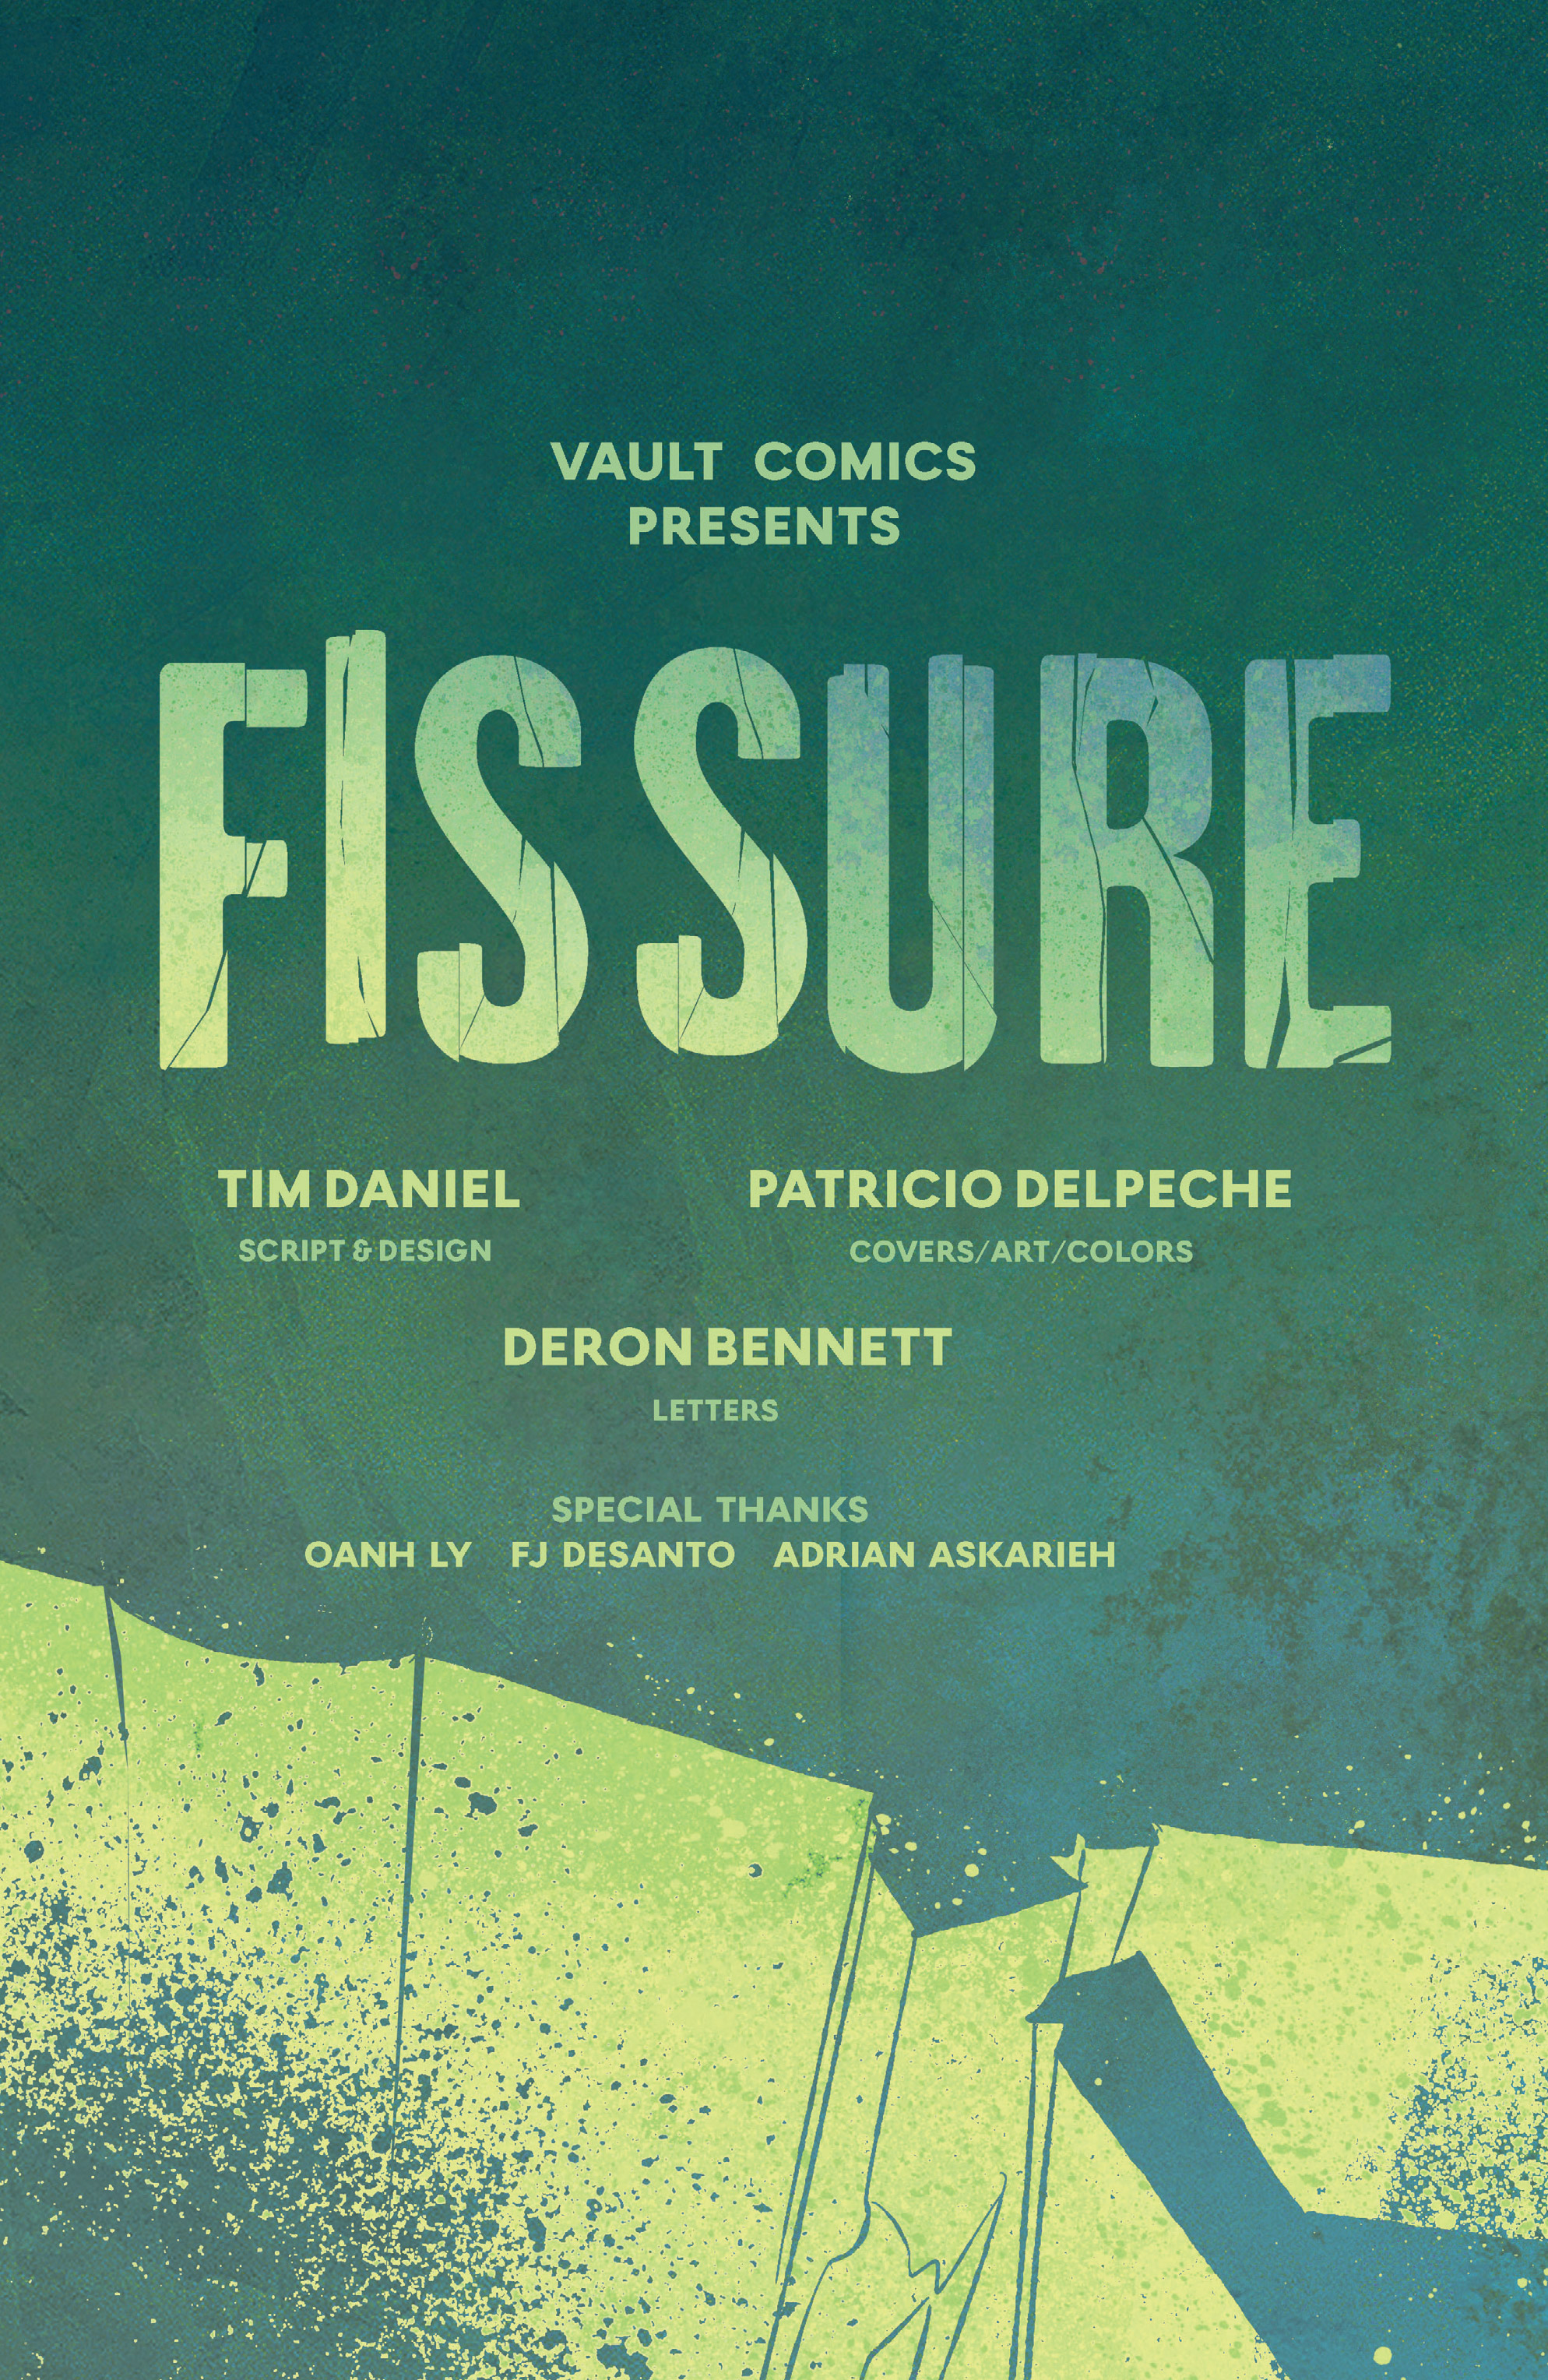 Read online Fissure comic -  Issue #2 - 4